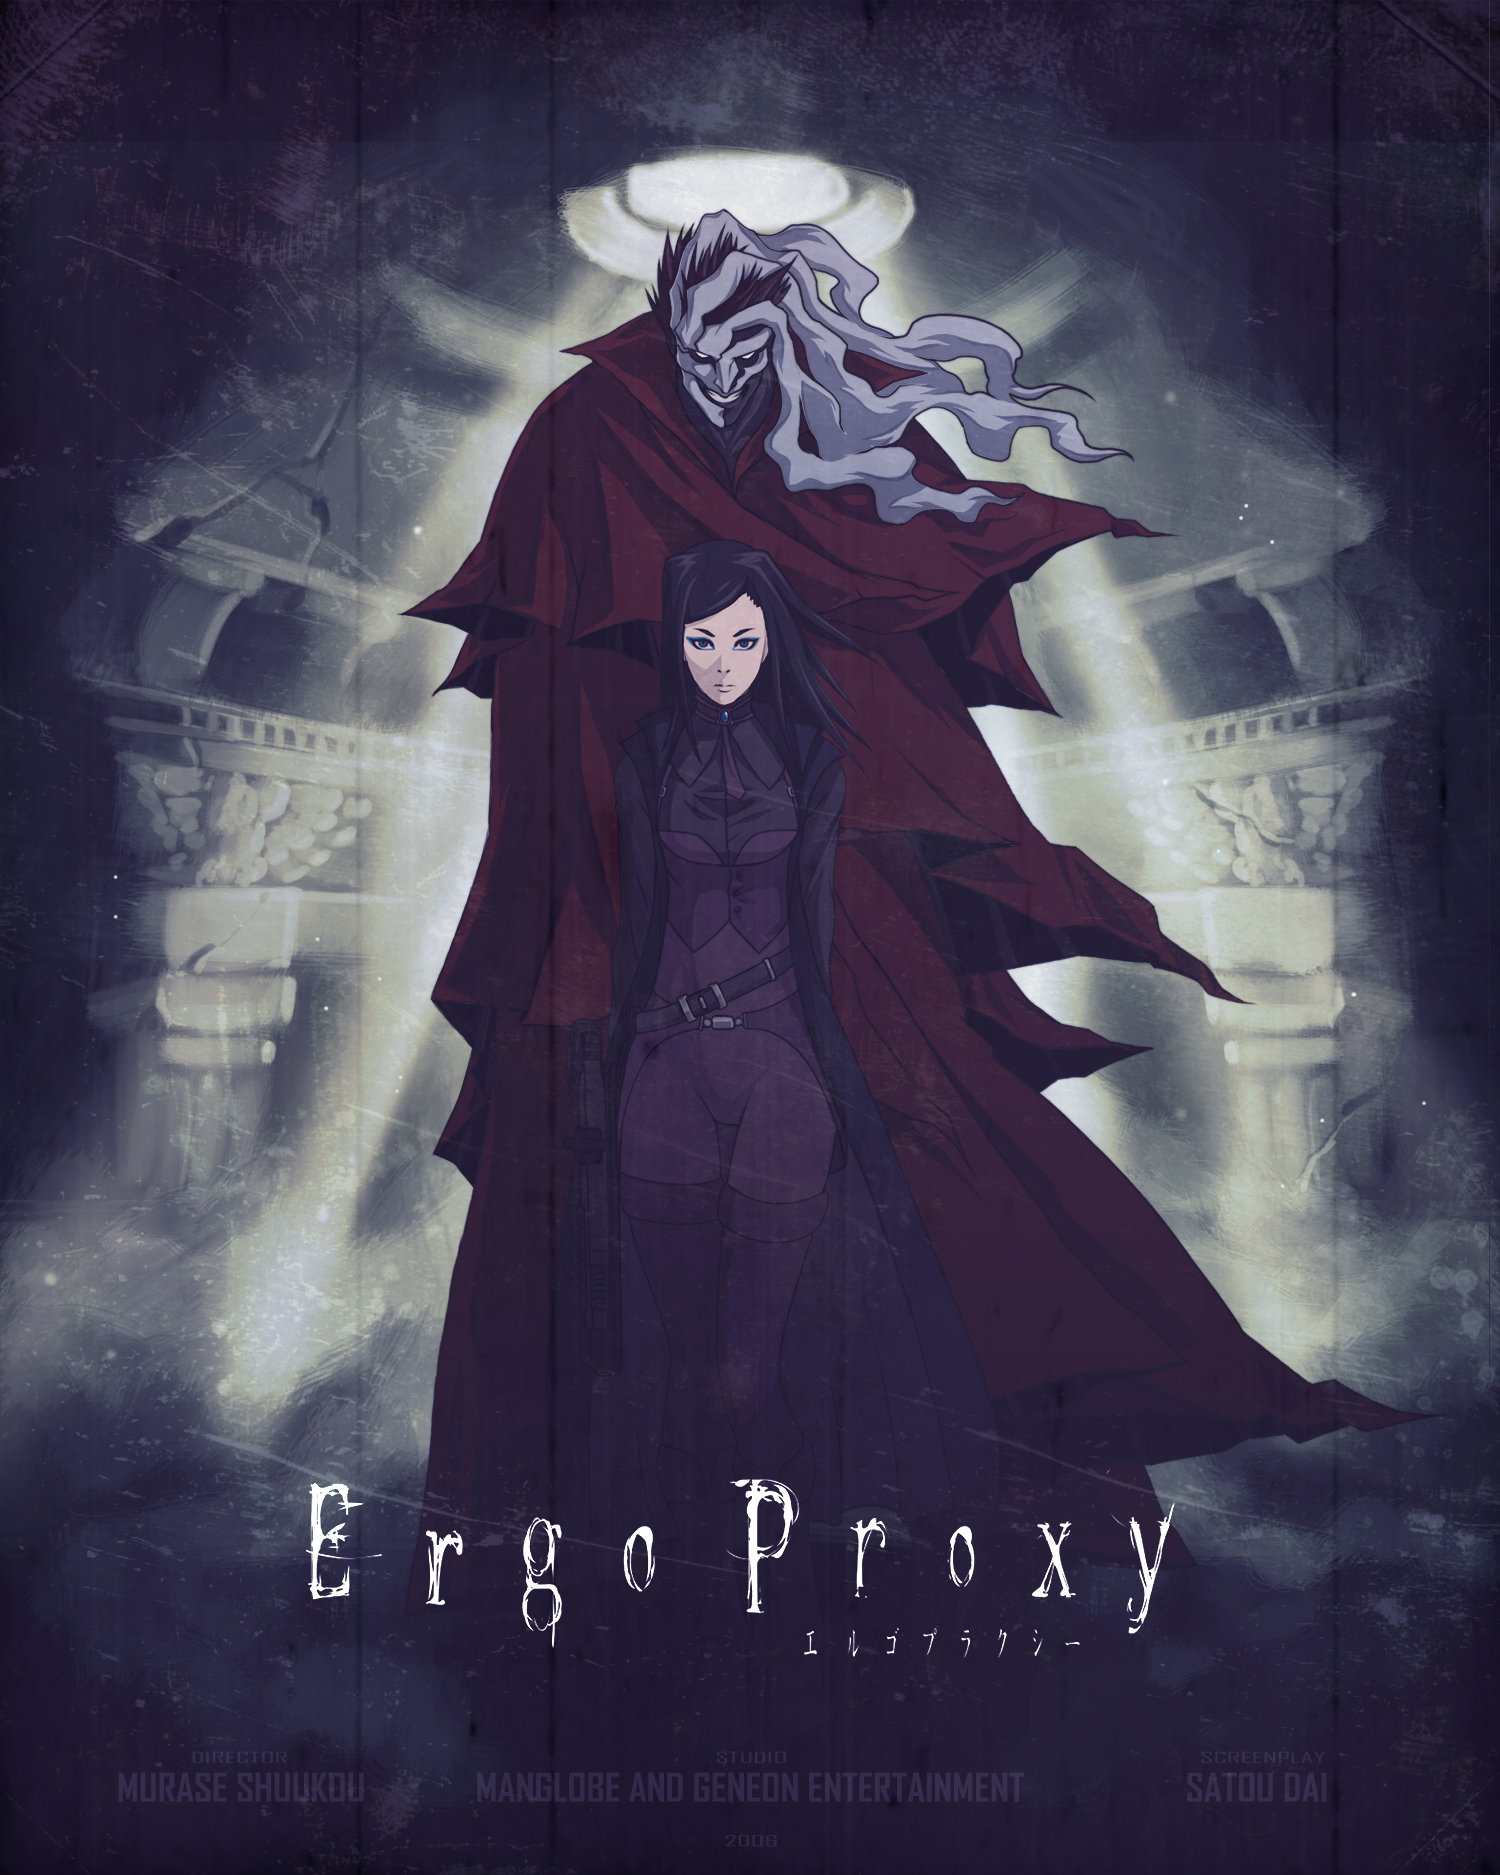 Ergo proxy, wallpaper zerochan anime image board.